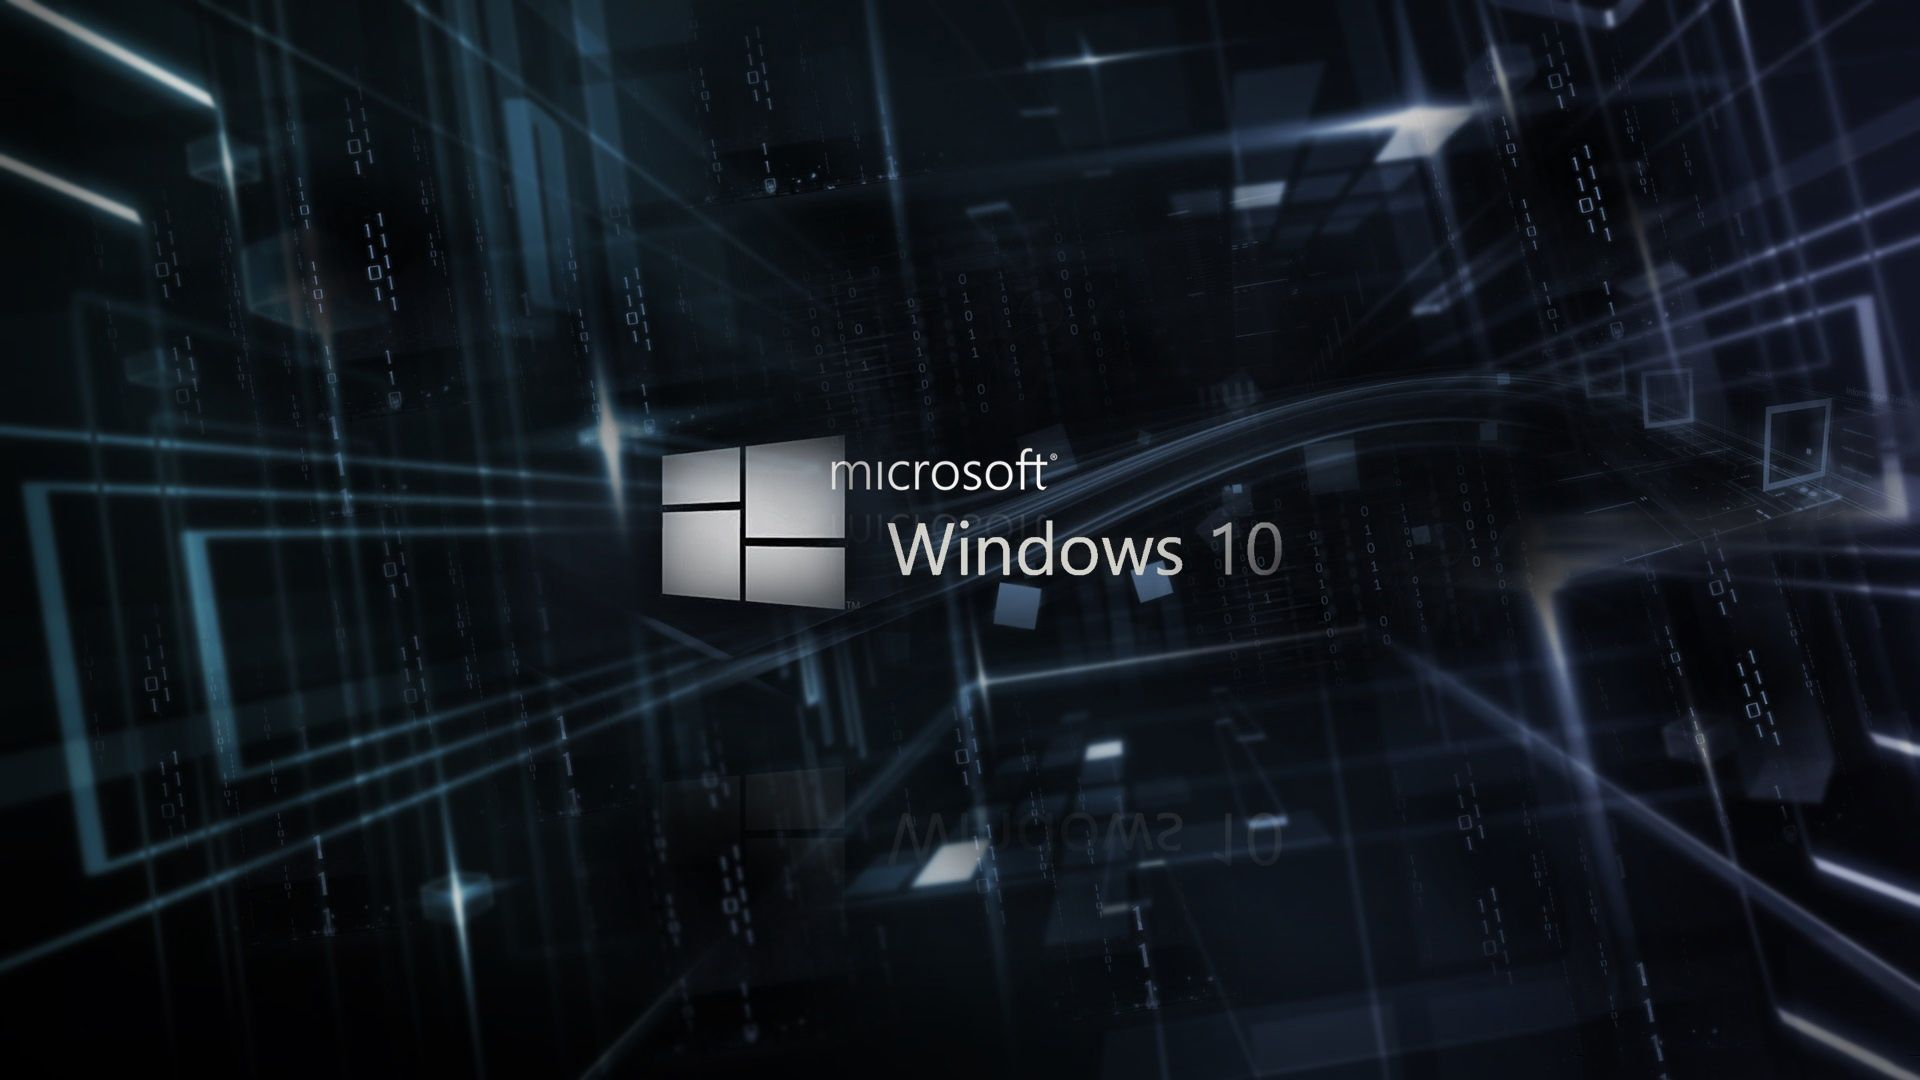 Image Result For Live Wallpaper Hd For Pc Windows 10 Wallpaper Windows 10 Windows Wallpaper Windows 10 Logo